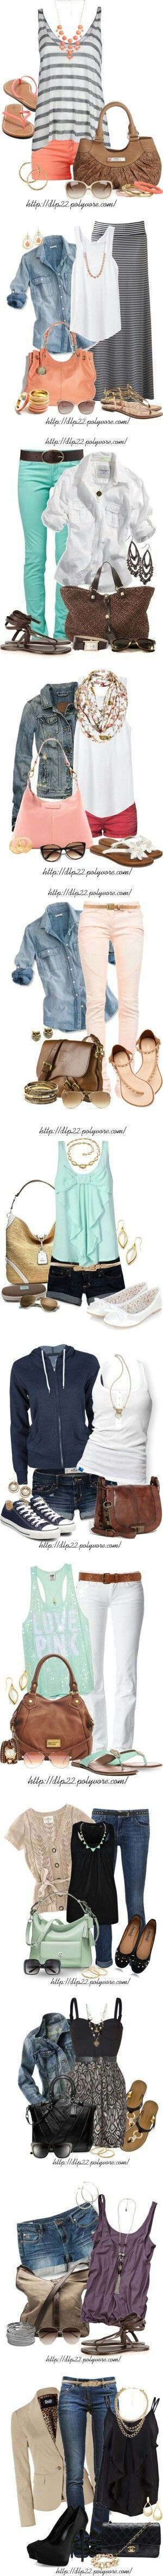 Find More at => http://feedproxy.google.com/~r/amazingoutfits/~3/D1CIle1fv5w/AmazingOutfits.page